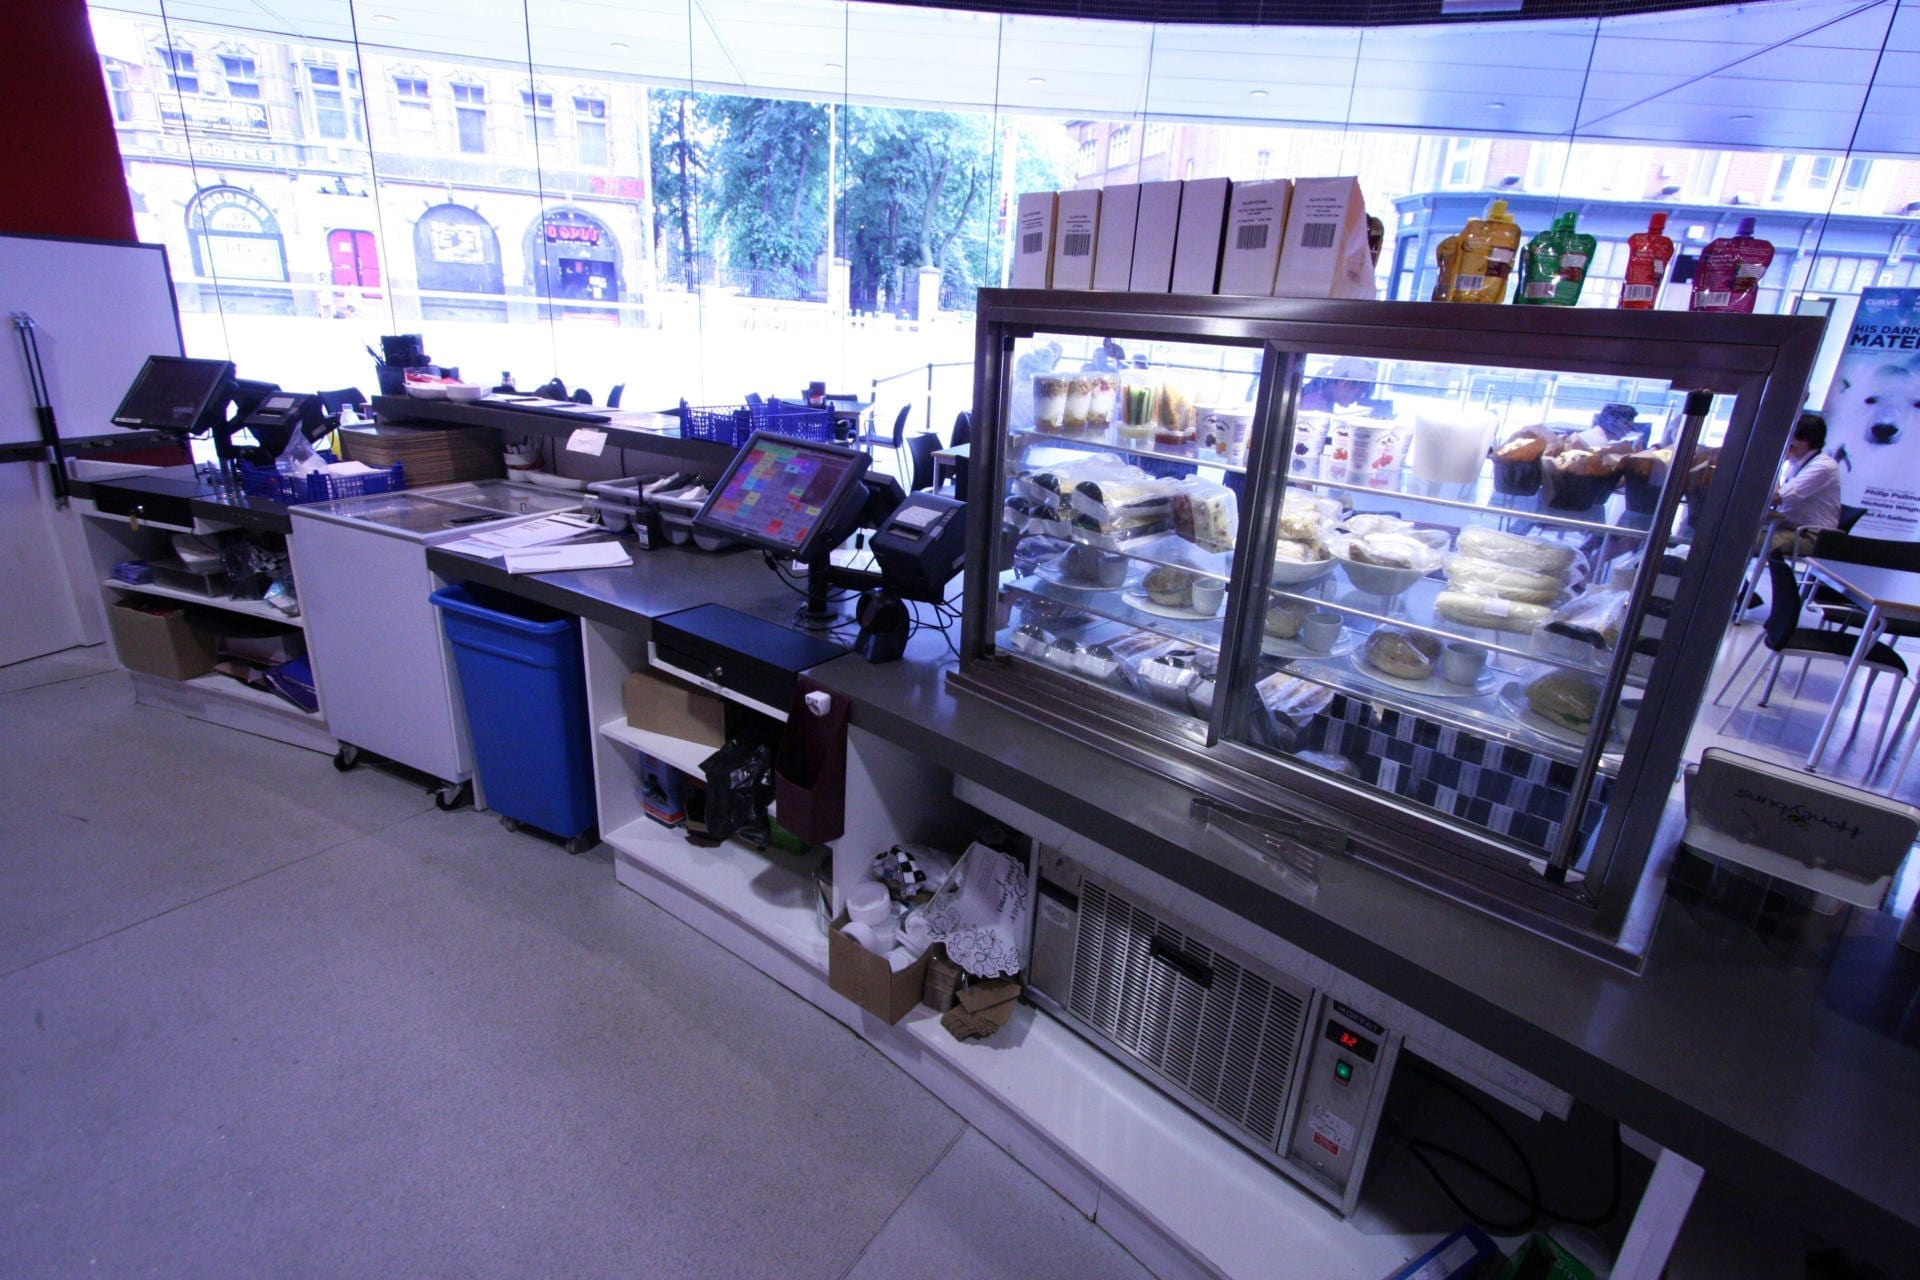 Leicester_City_Council_Leicester_Cafe_Bar_Front_of_house_Servery_Food_Display_spacecatering_6